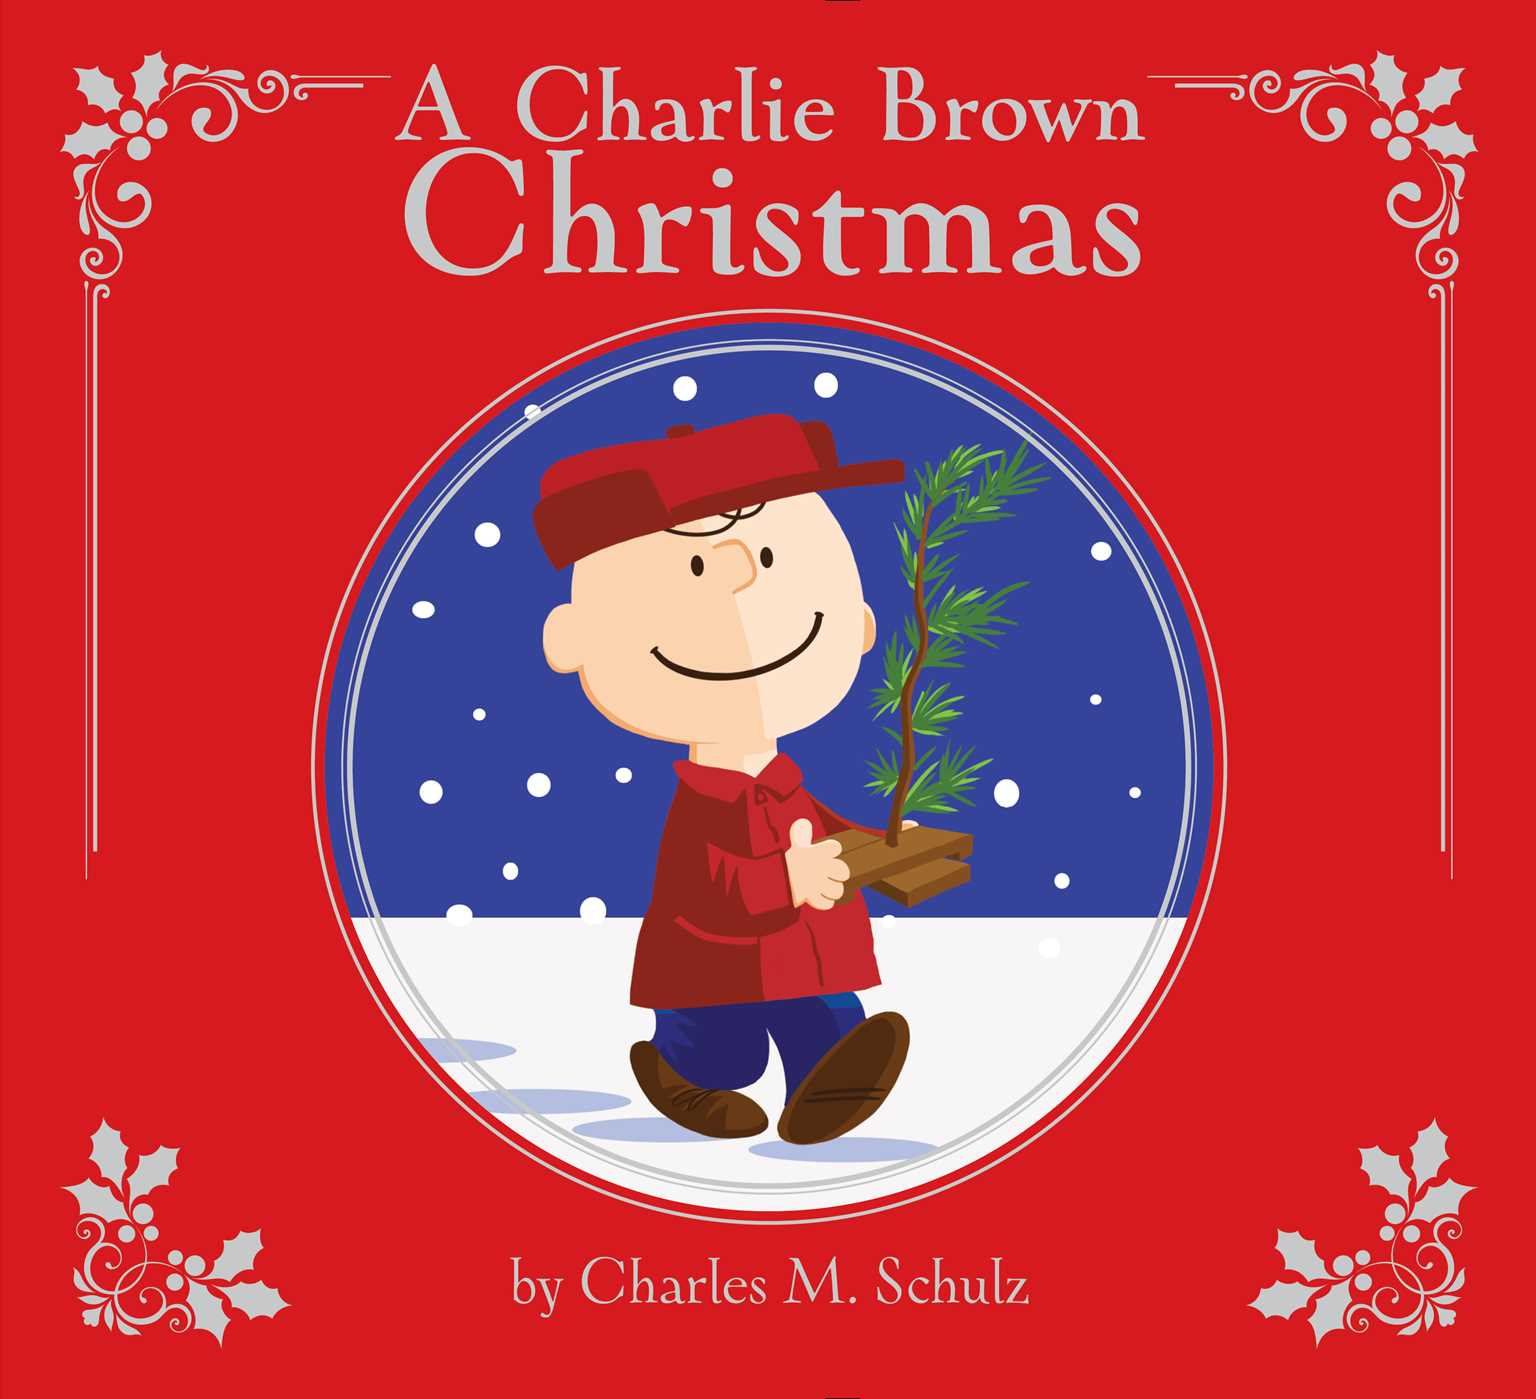 Christmas Book.A Charlie Brown Christmas Book By Charles M Schulz